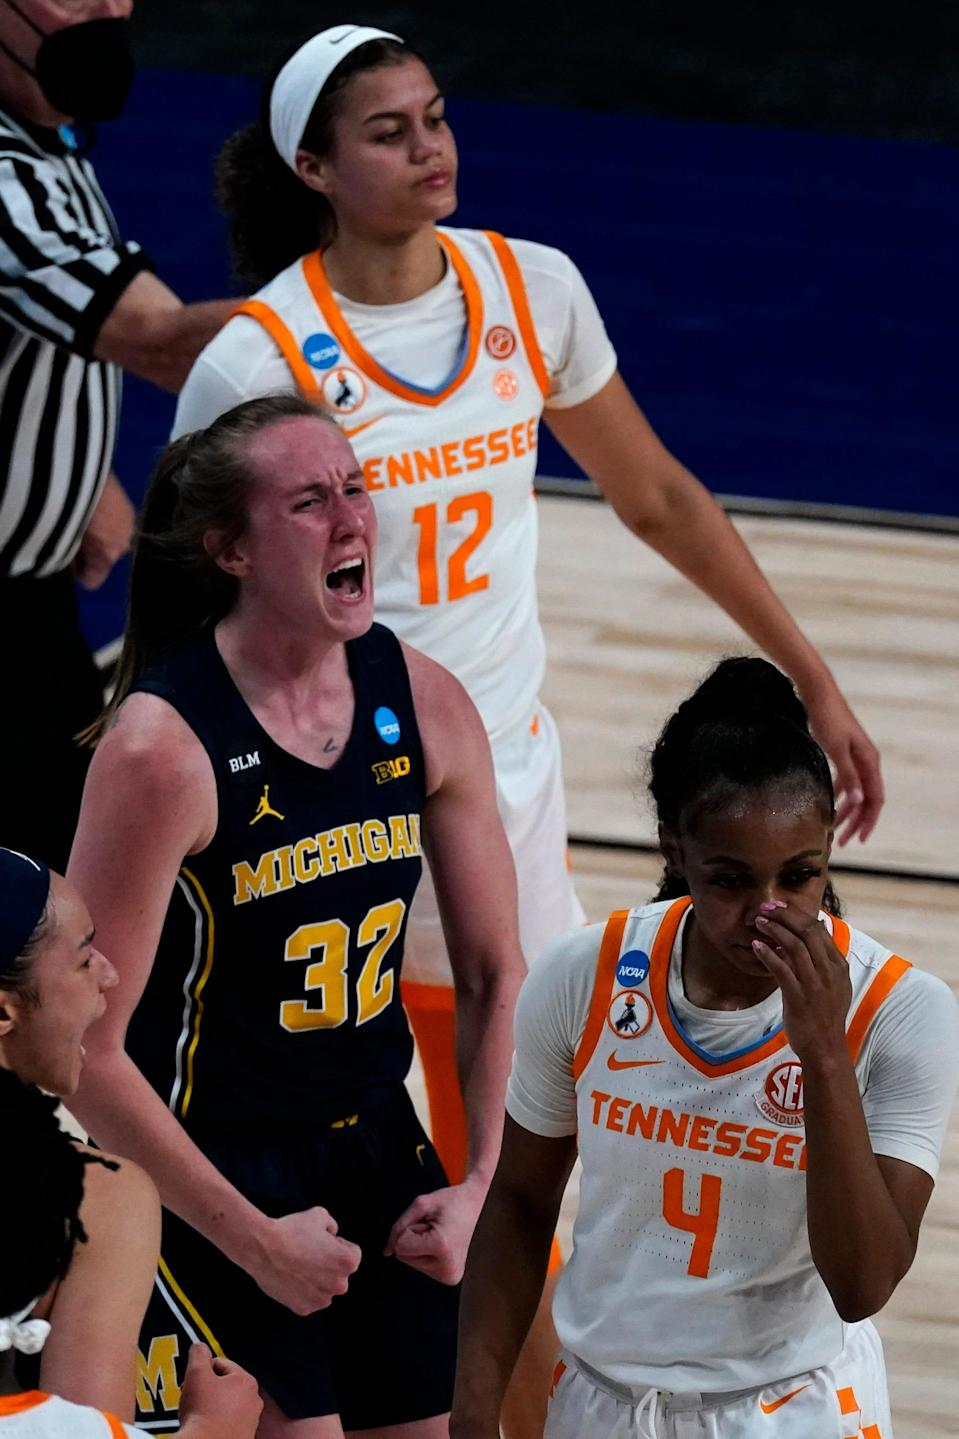 Michigan guard Leigha Brown celebrates after making a basket during the first half of the second round NCAA women's tournament game against Tennessee at the Alamodome in San Antonio on Tuesday, March 23, 2021.